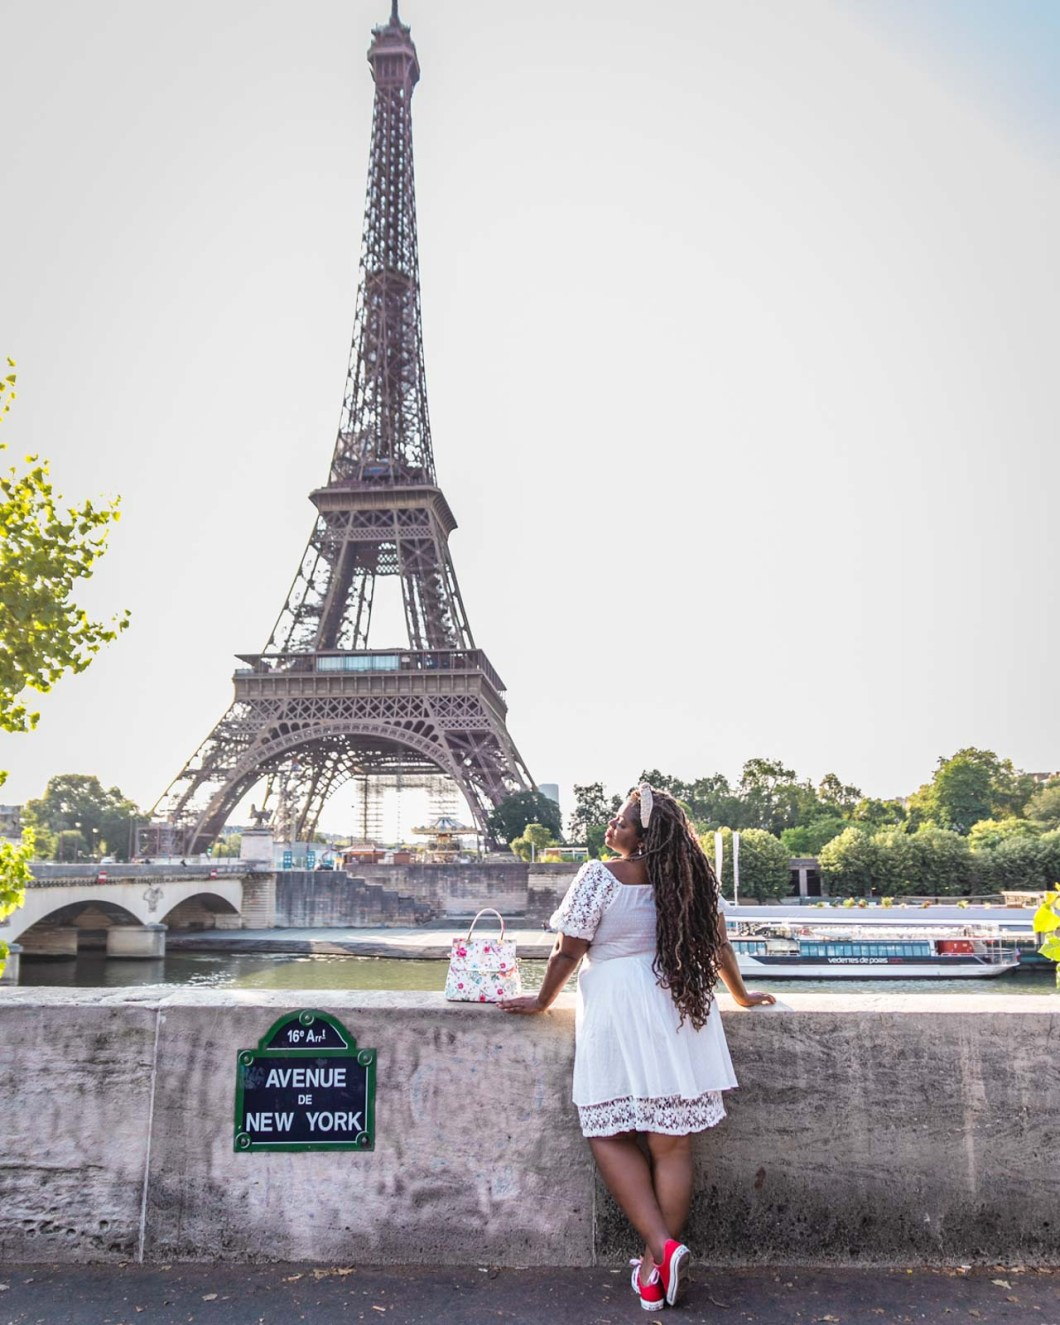 Photoshoot in Avenue de New York with the Eiffel Tower